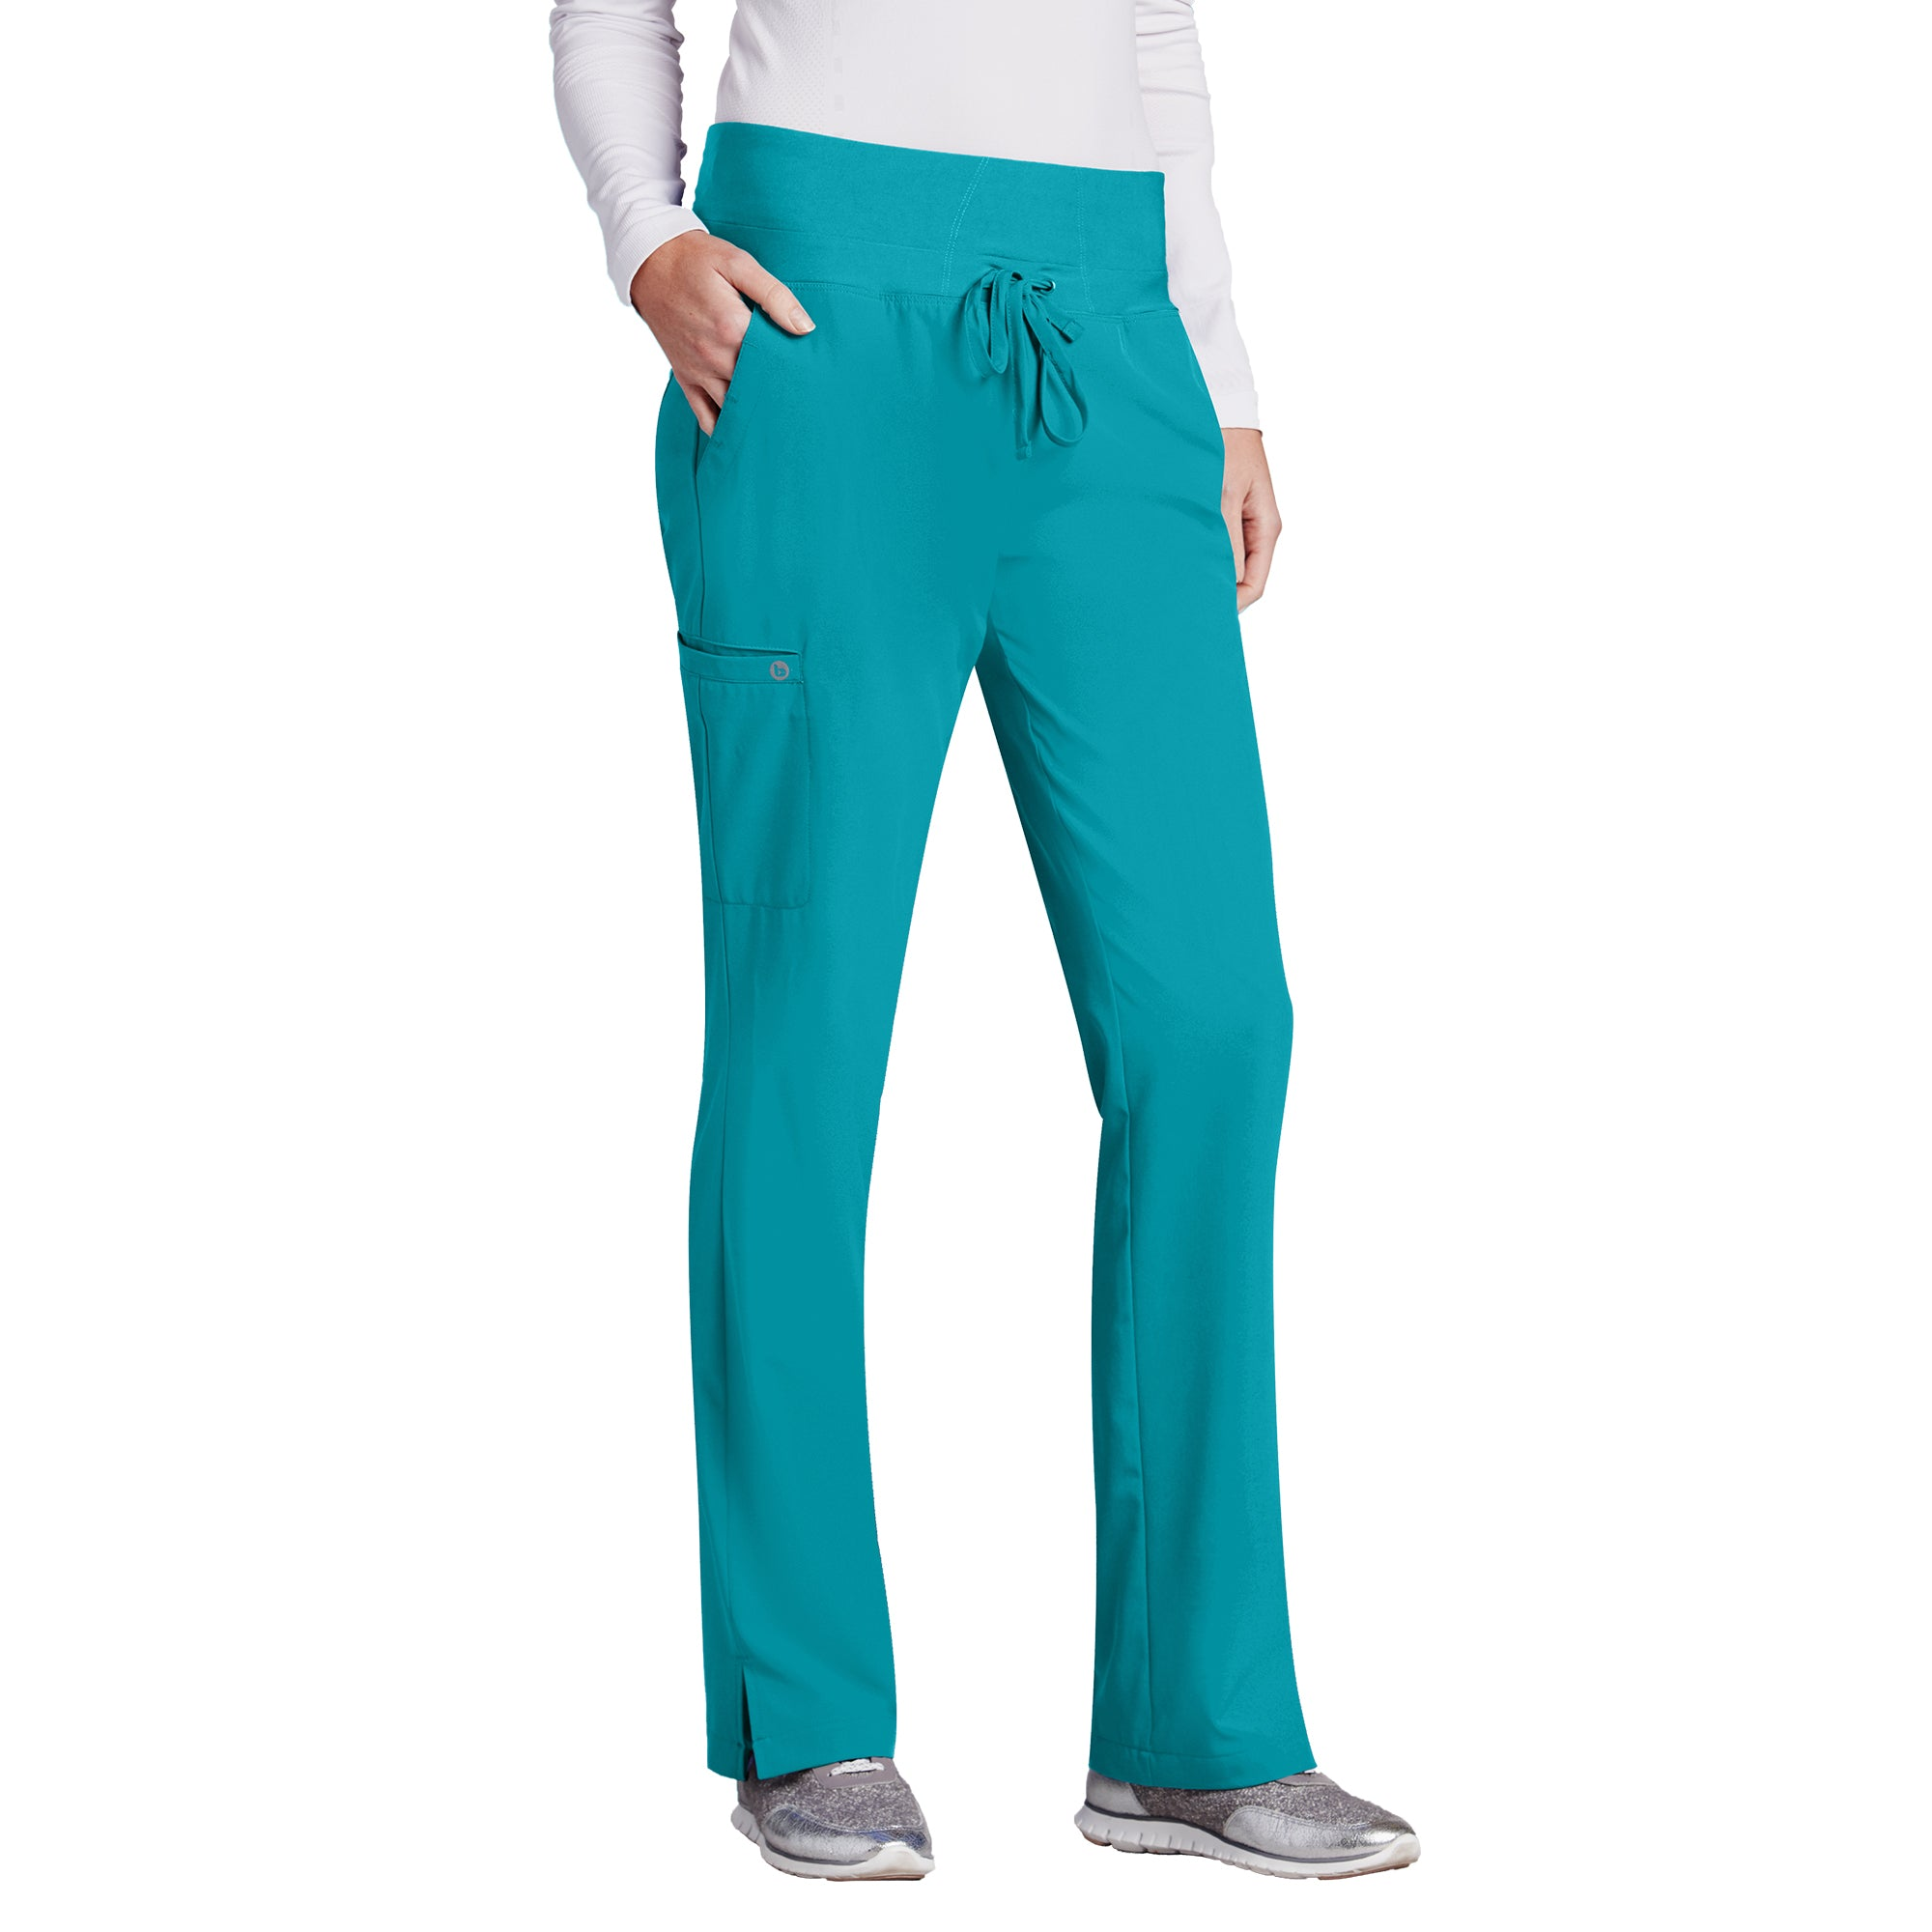 Barco One 5206 5-Pocket Yoga Pant